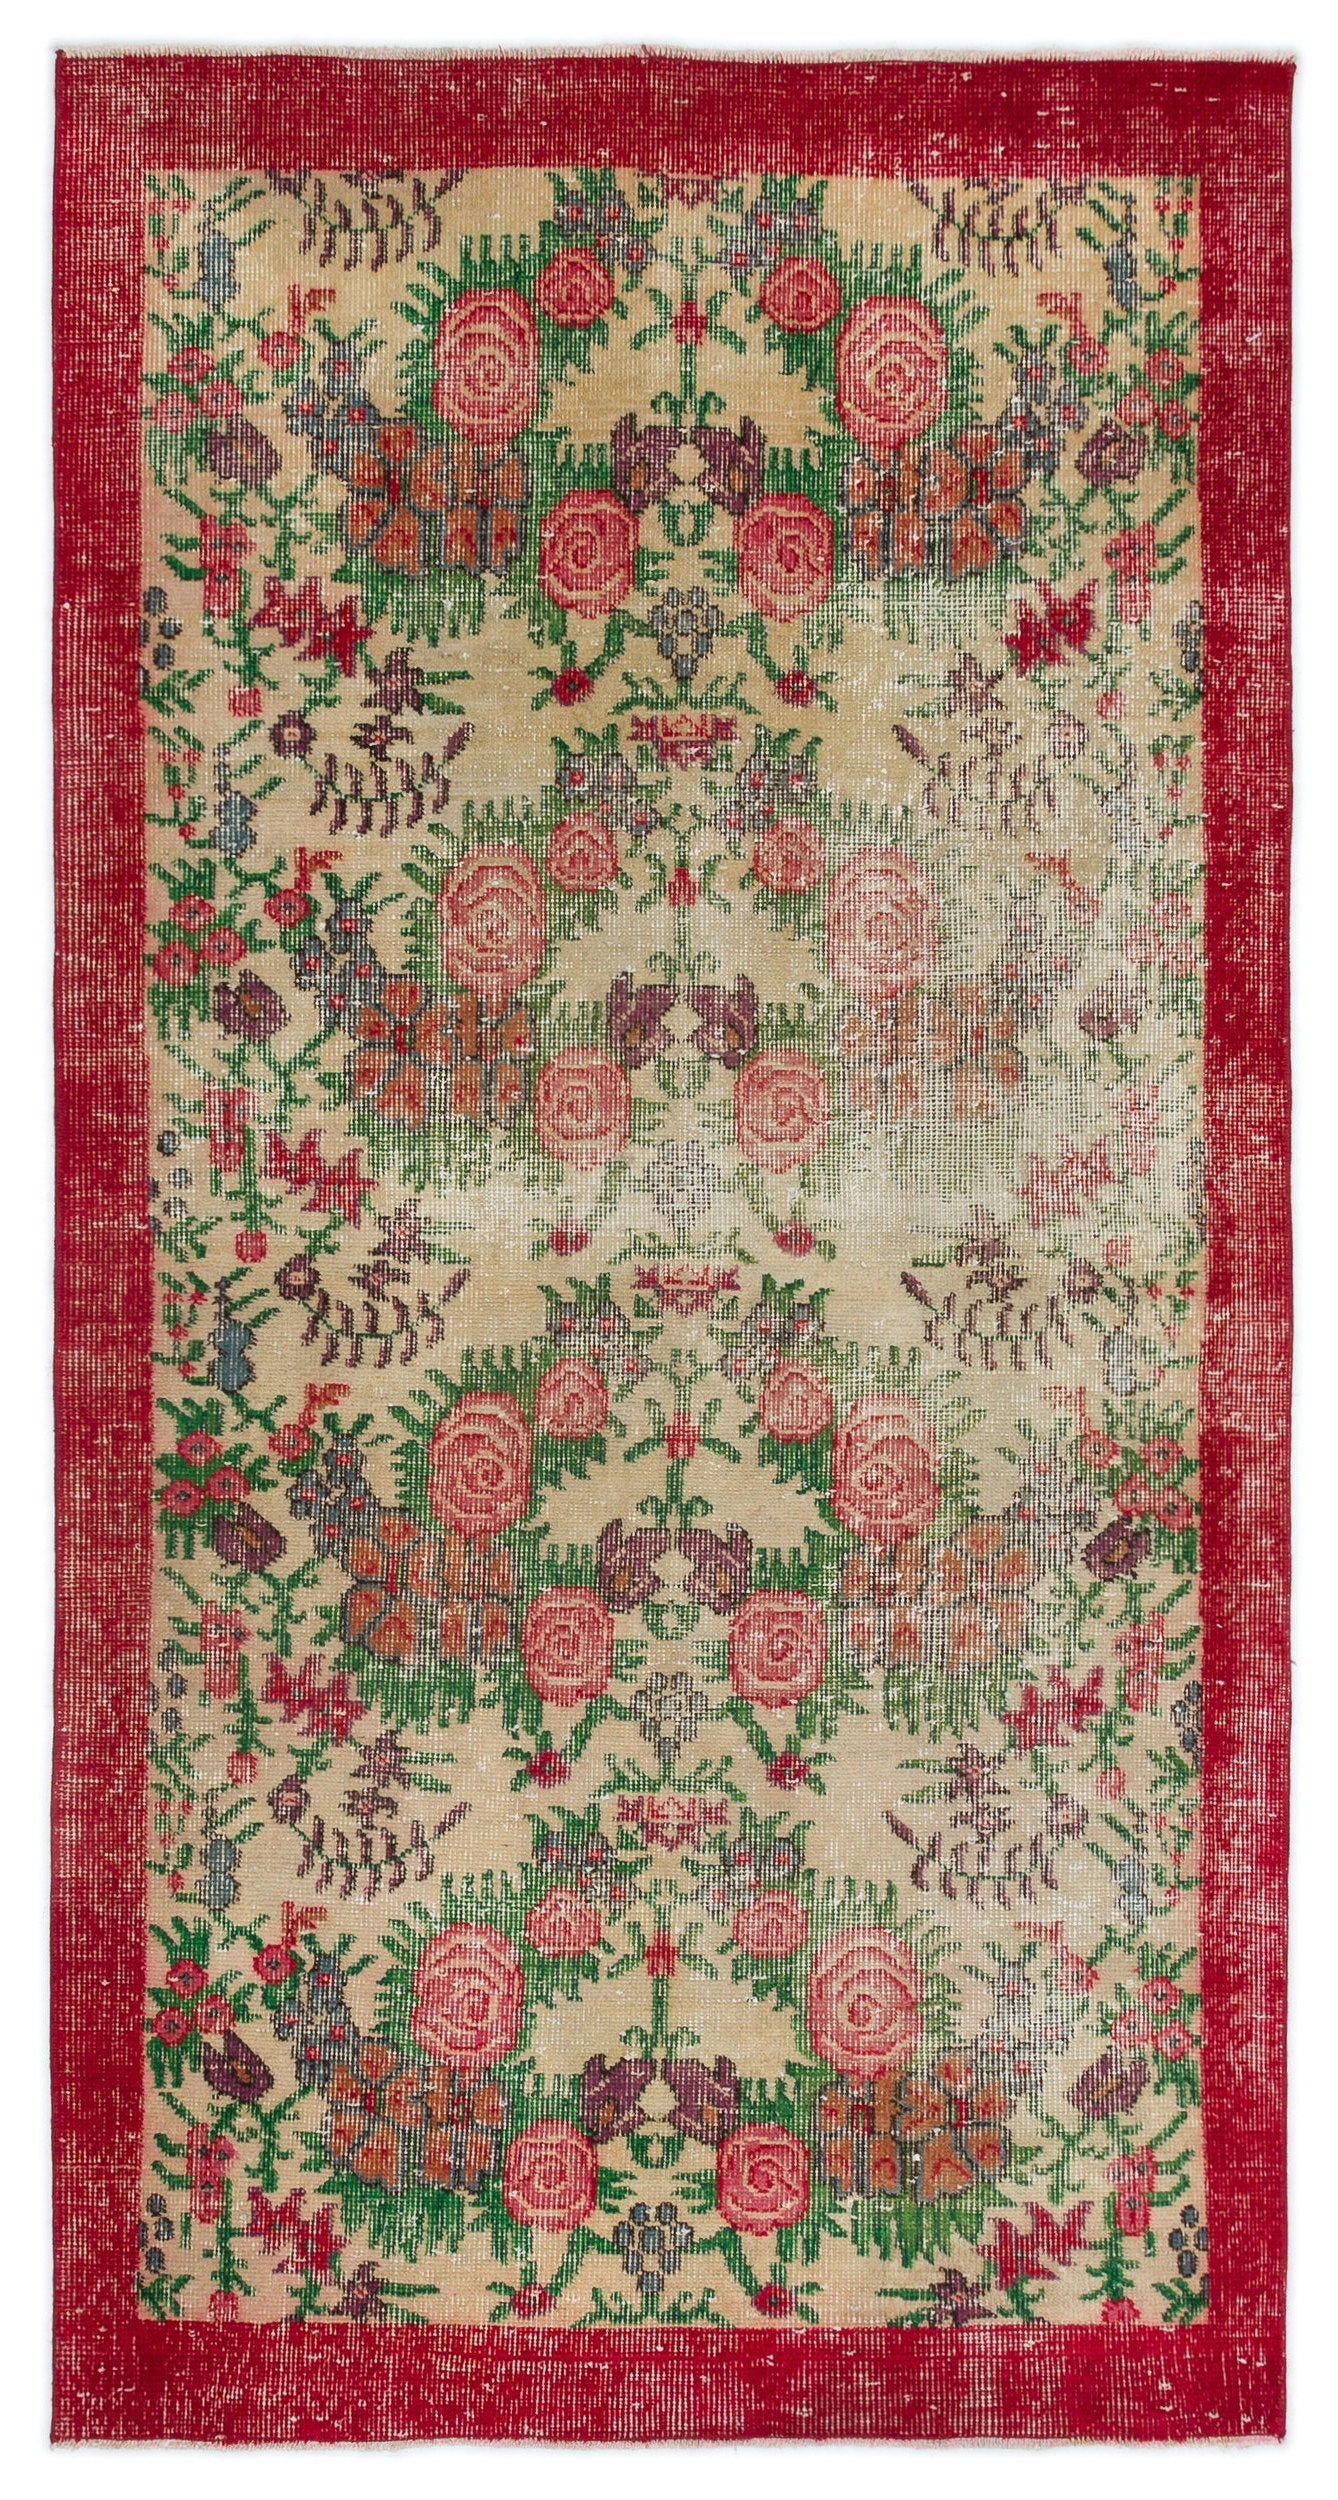 Retro Over Dyed Vintage Rug 3'7'' x 6'8'' ft 110 x 204 cm